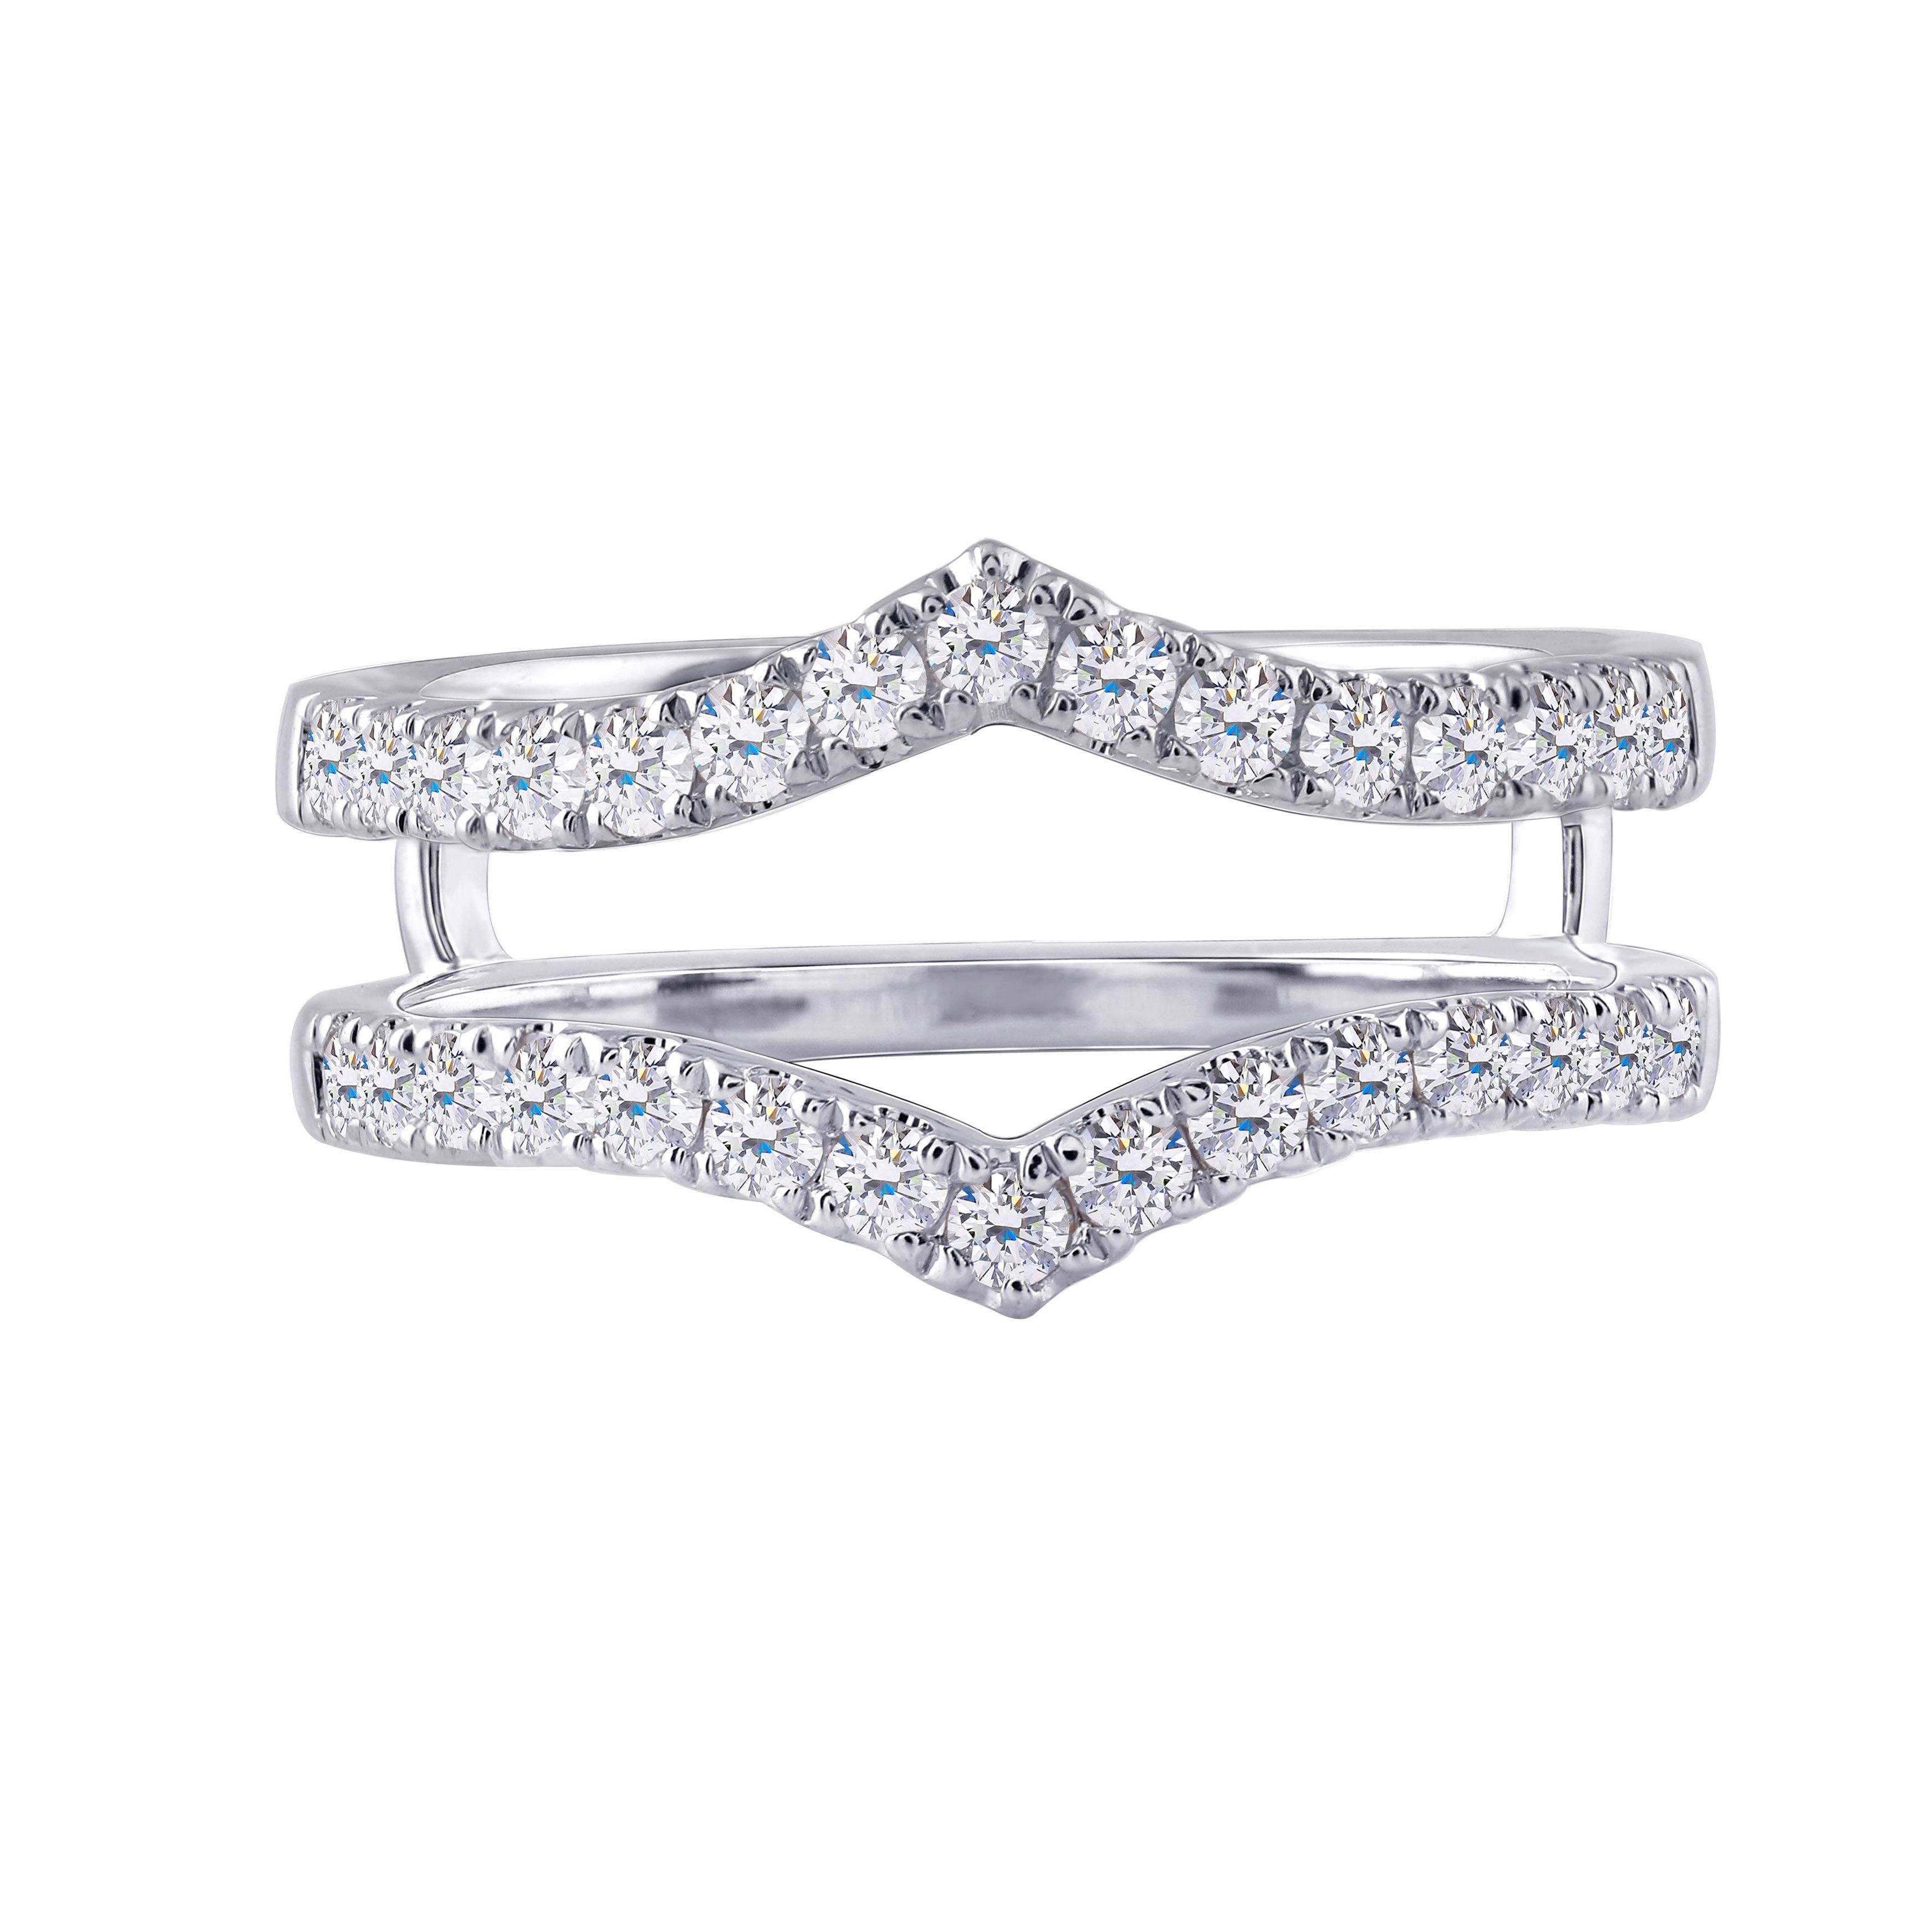 doveggs moissanite eternity band 14k white gold 0.6ctw moissanite half eternity anniversary wedding band for women - DovEggs-Seattle